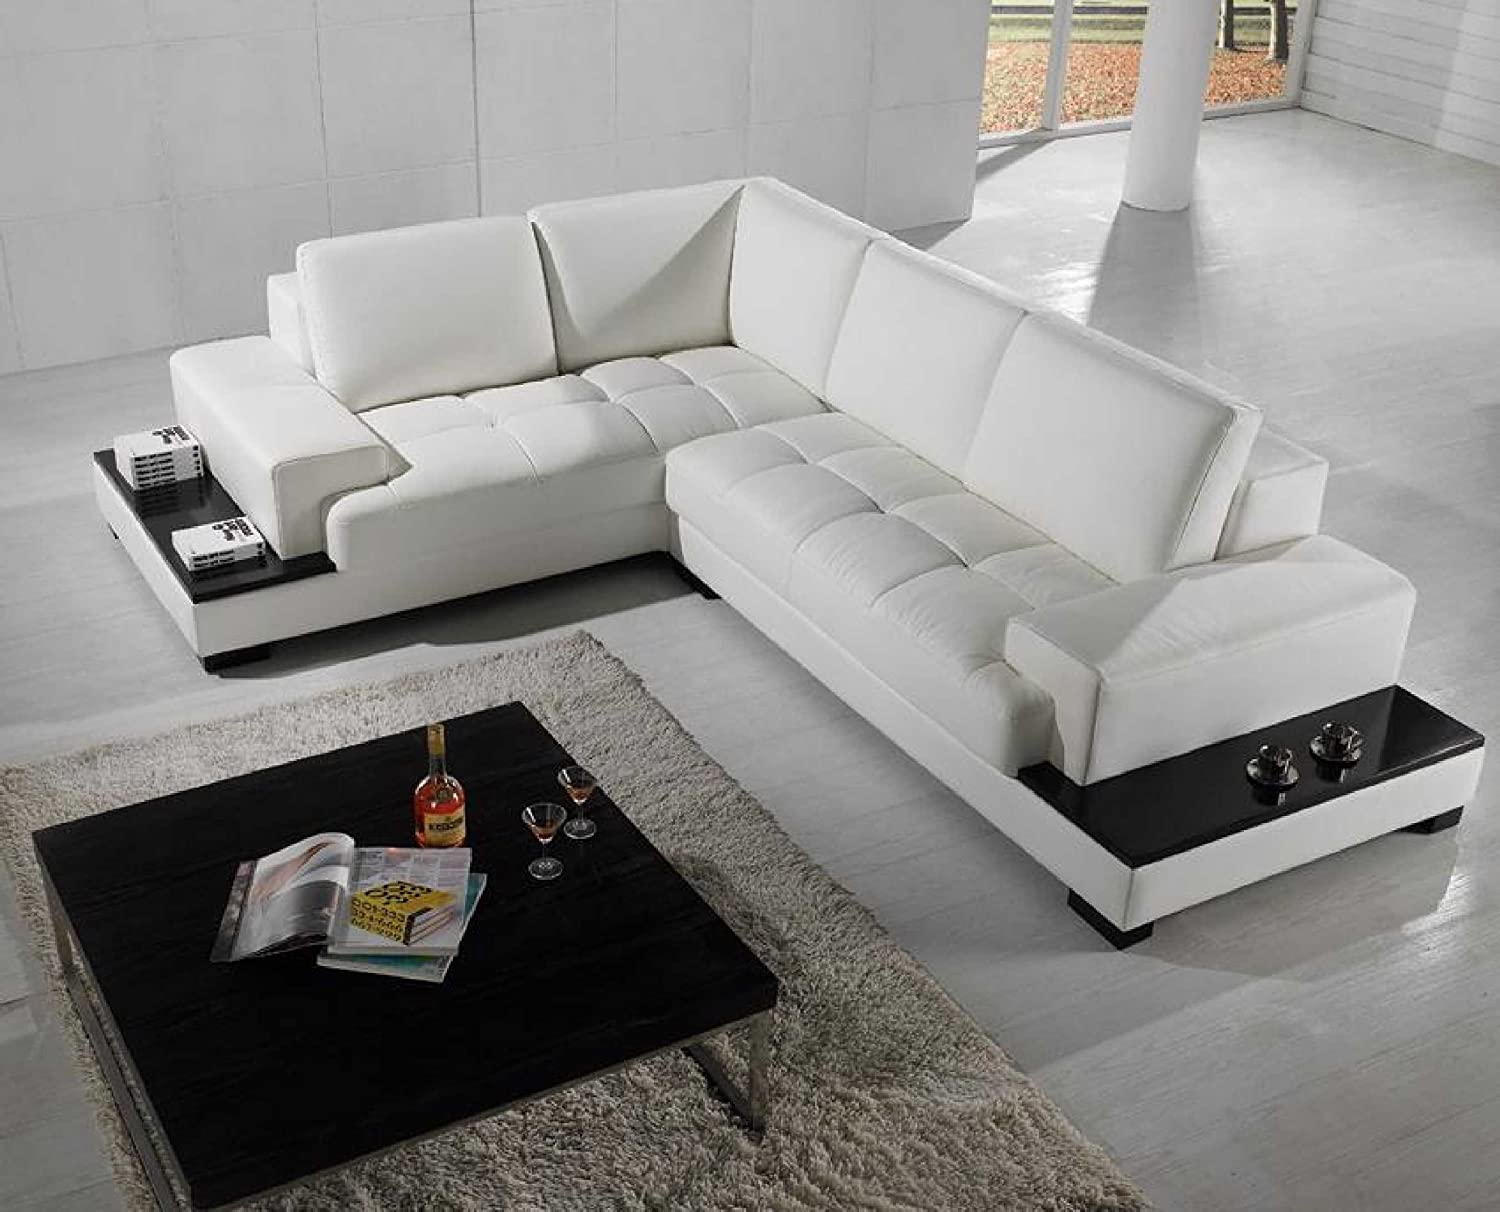 Charmant Amazon.com: Vig Furniture T71 Modern Leather Sectional: Kitchen U0026 Dining